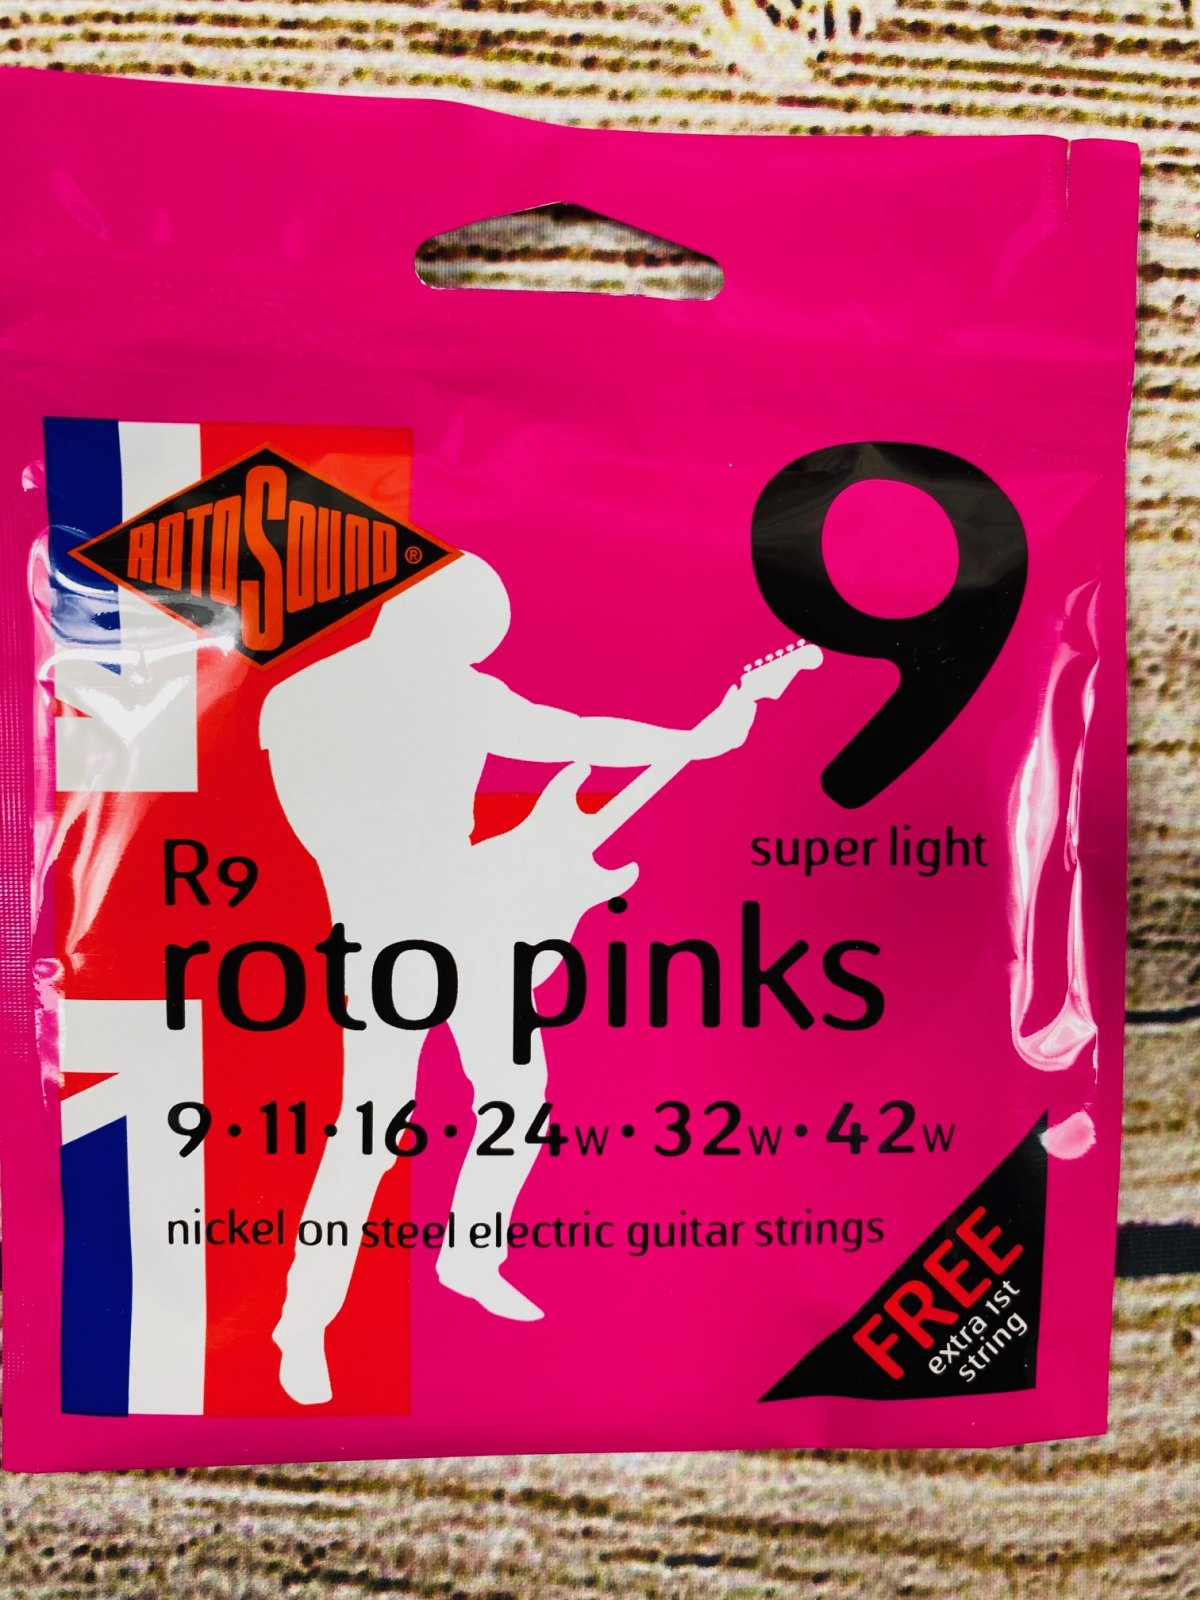 Rotosound R9 Roto Pinks Nickel On Steel Electric Guitar Strings - .009-.042 Super Light